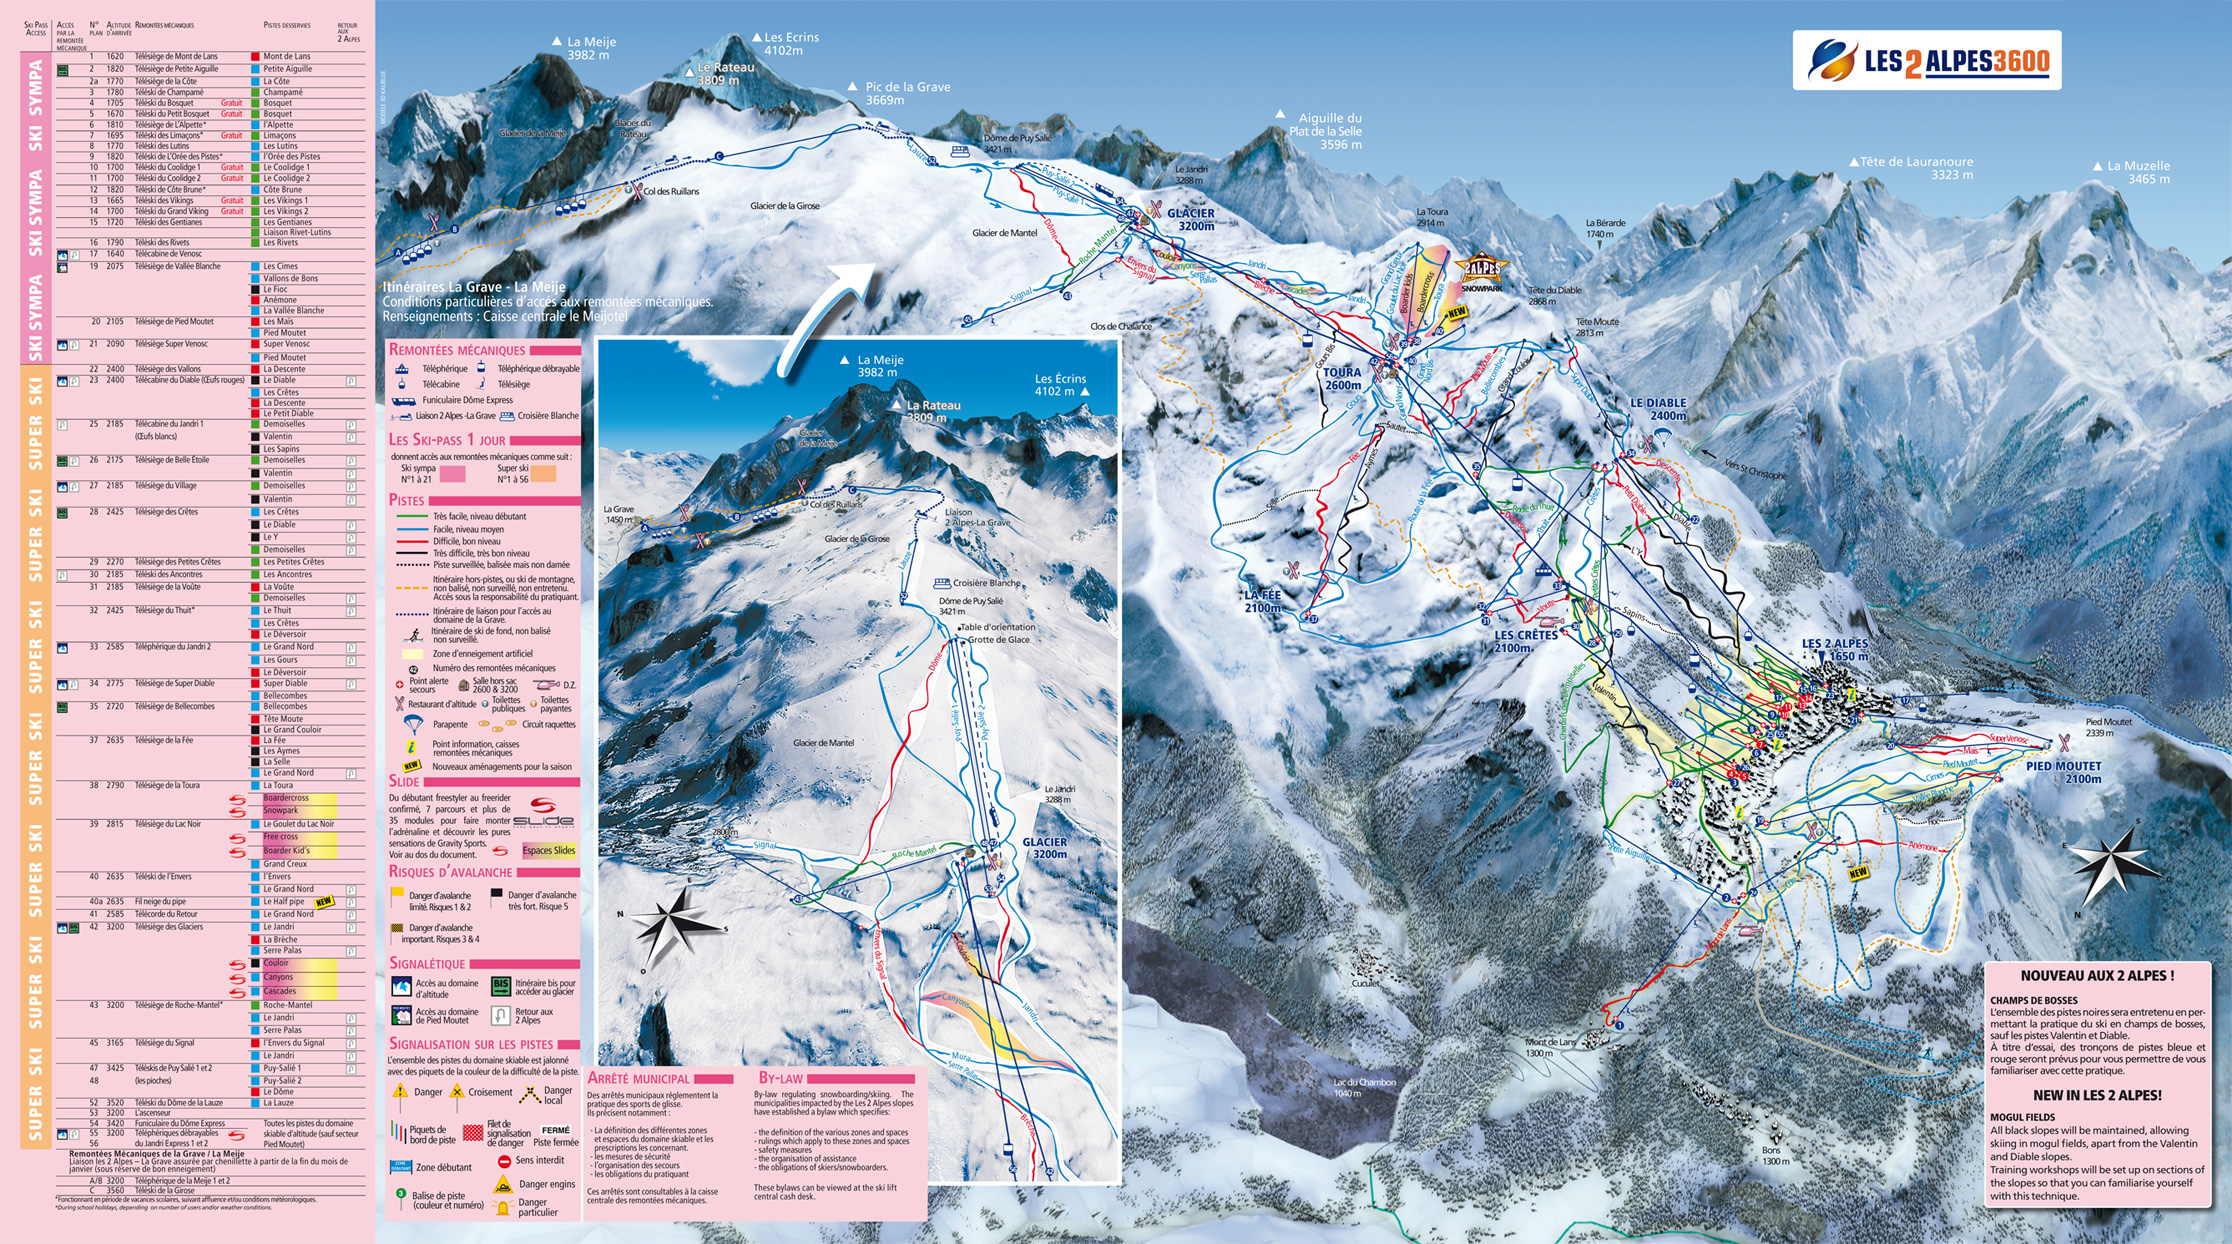 Travel Information Getting to Les Deux Alpes PowderBeds